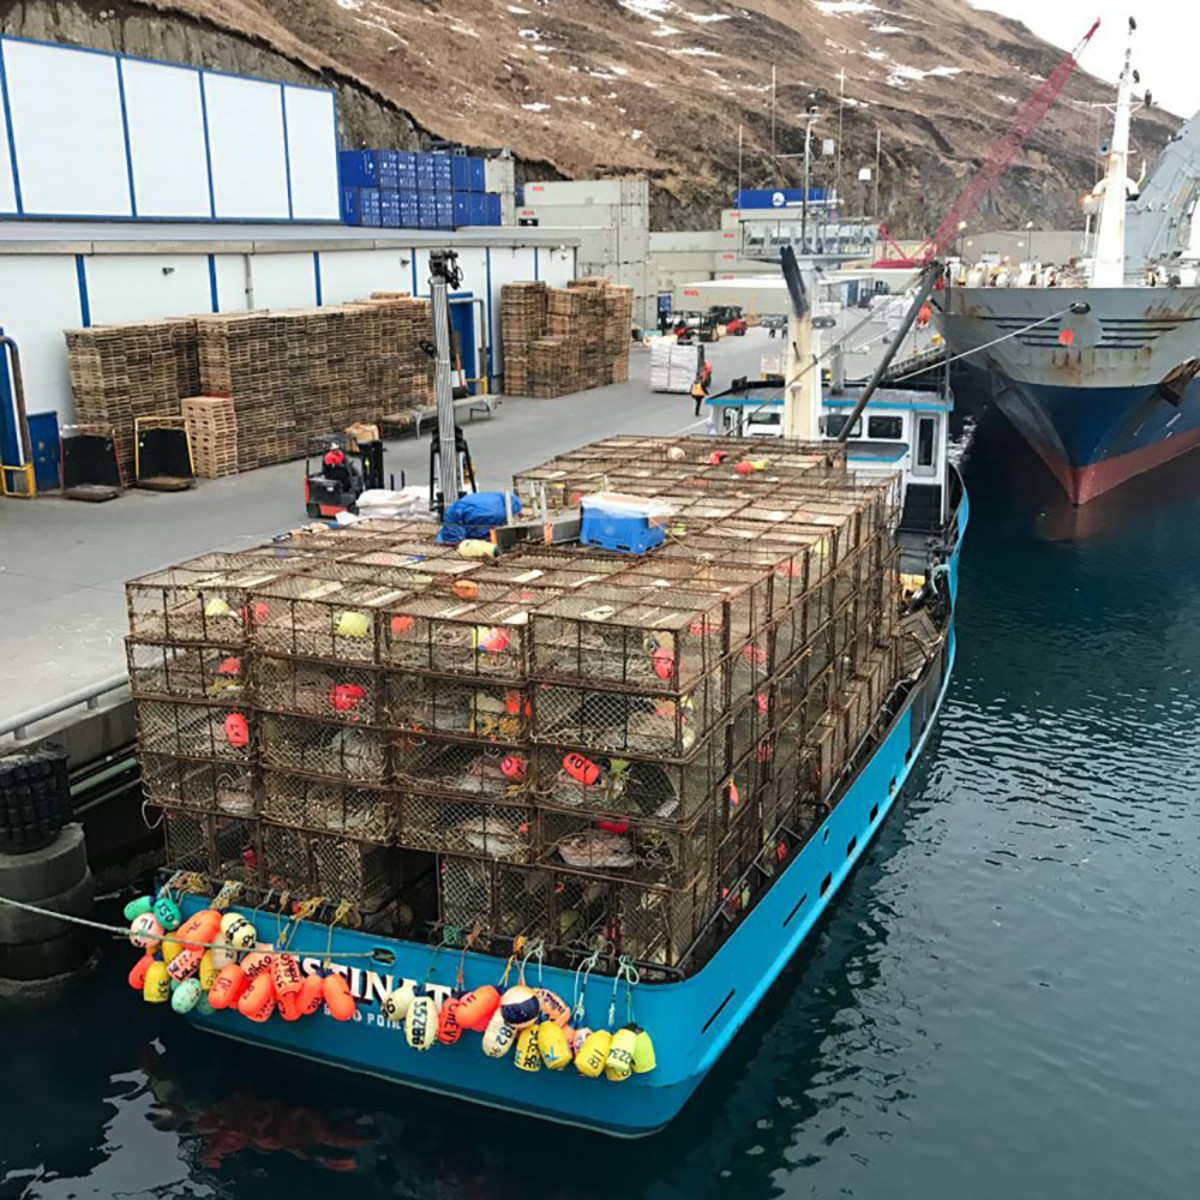 Crab pots that the Destination was carrying during its stopover at Dutch Harbor.